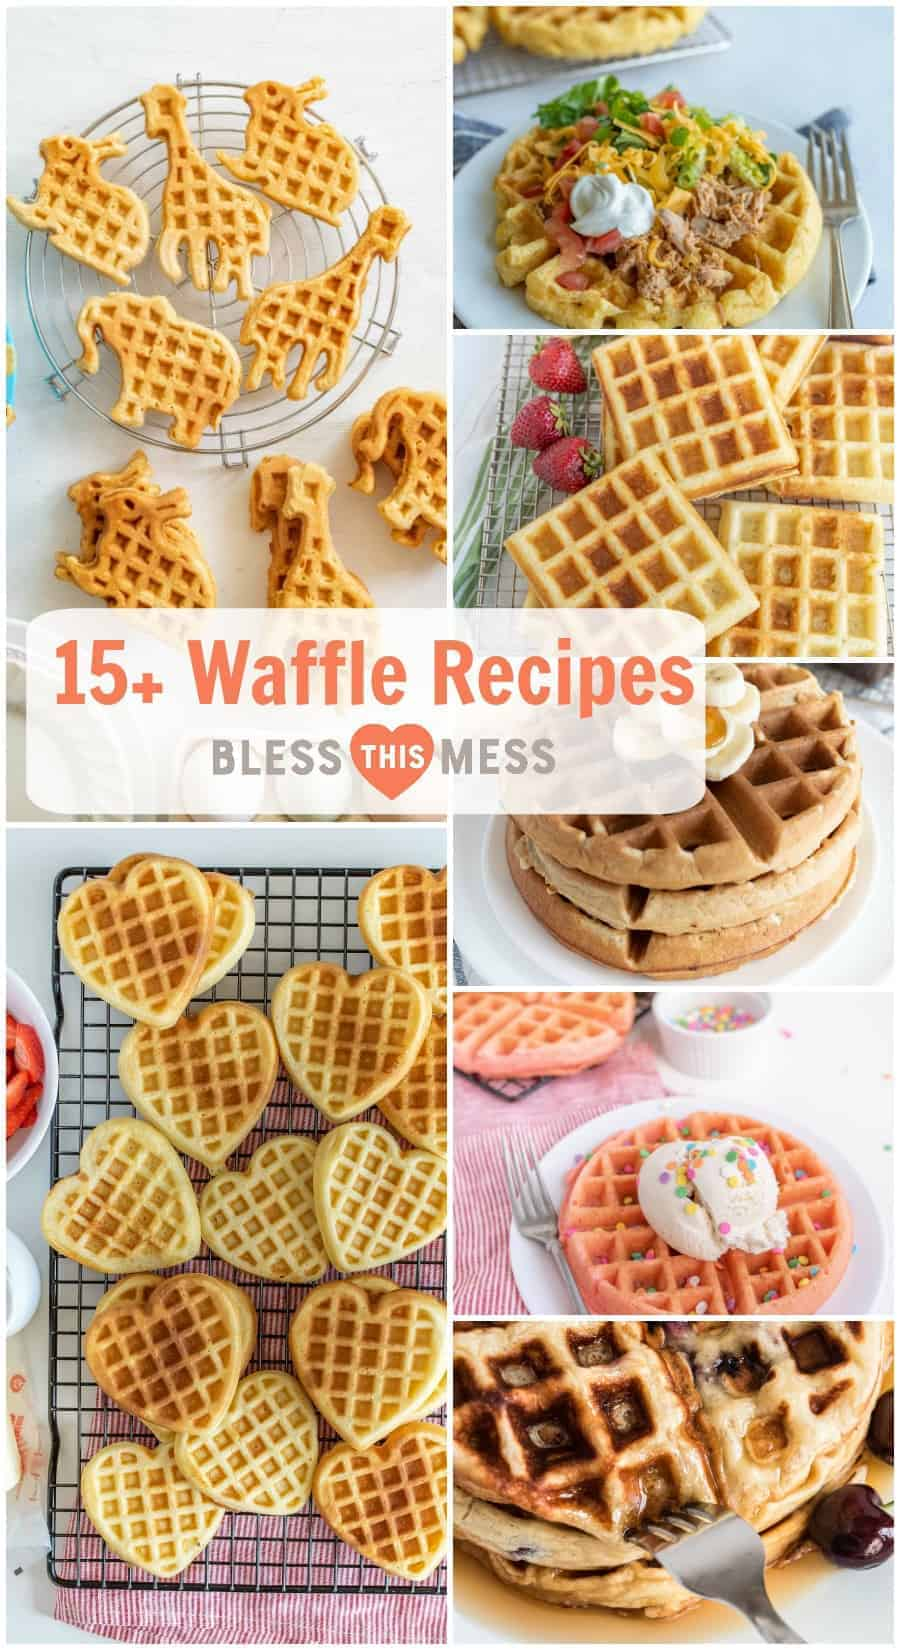 Did you know there are TONS of ways to get creative and put a spin on classic waffles?! This list of 15+ easy and delicious homemade waffle recipes will get you thinking outside the box and enjoying plenty of yummy sweet and savory waffle varieties! #waffles #wafflerecipe #creativewaffles #breakfast #baking